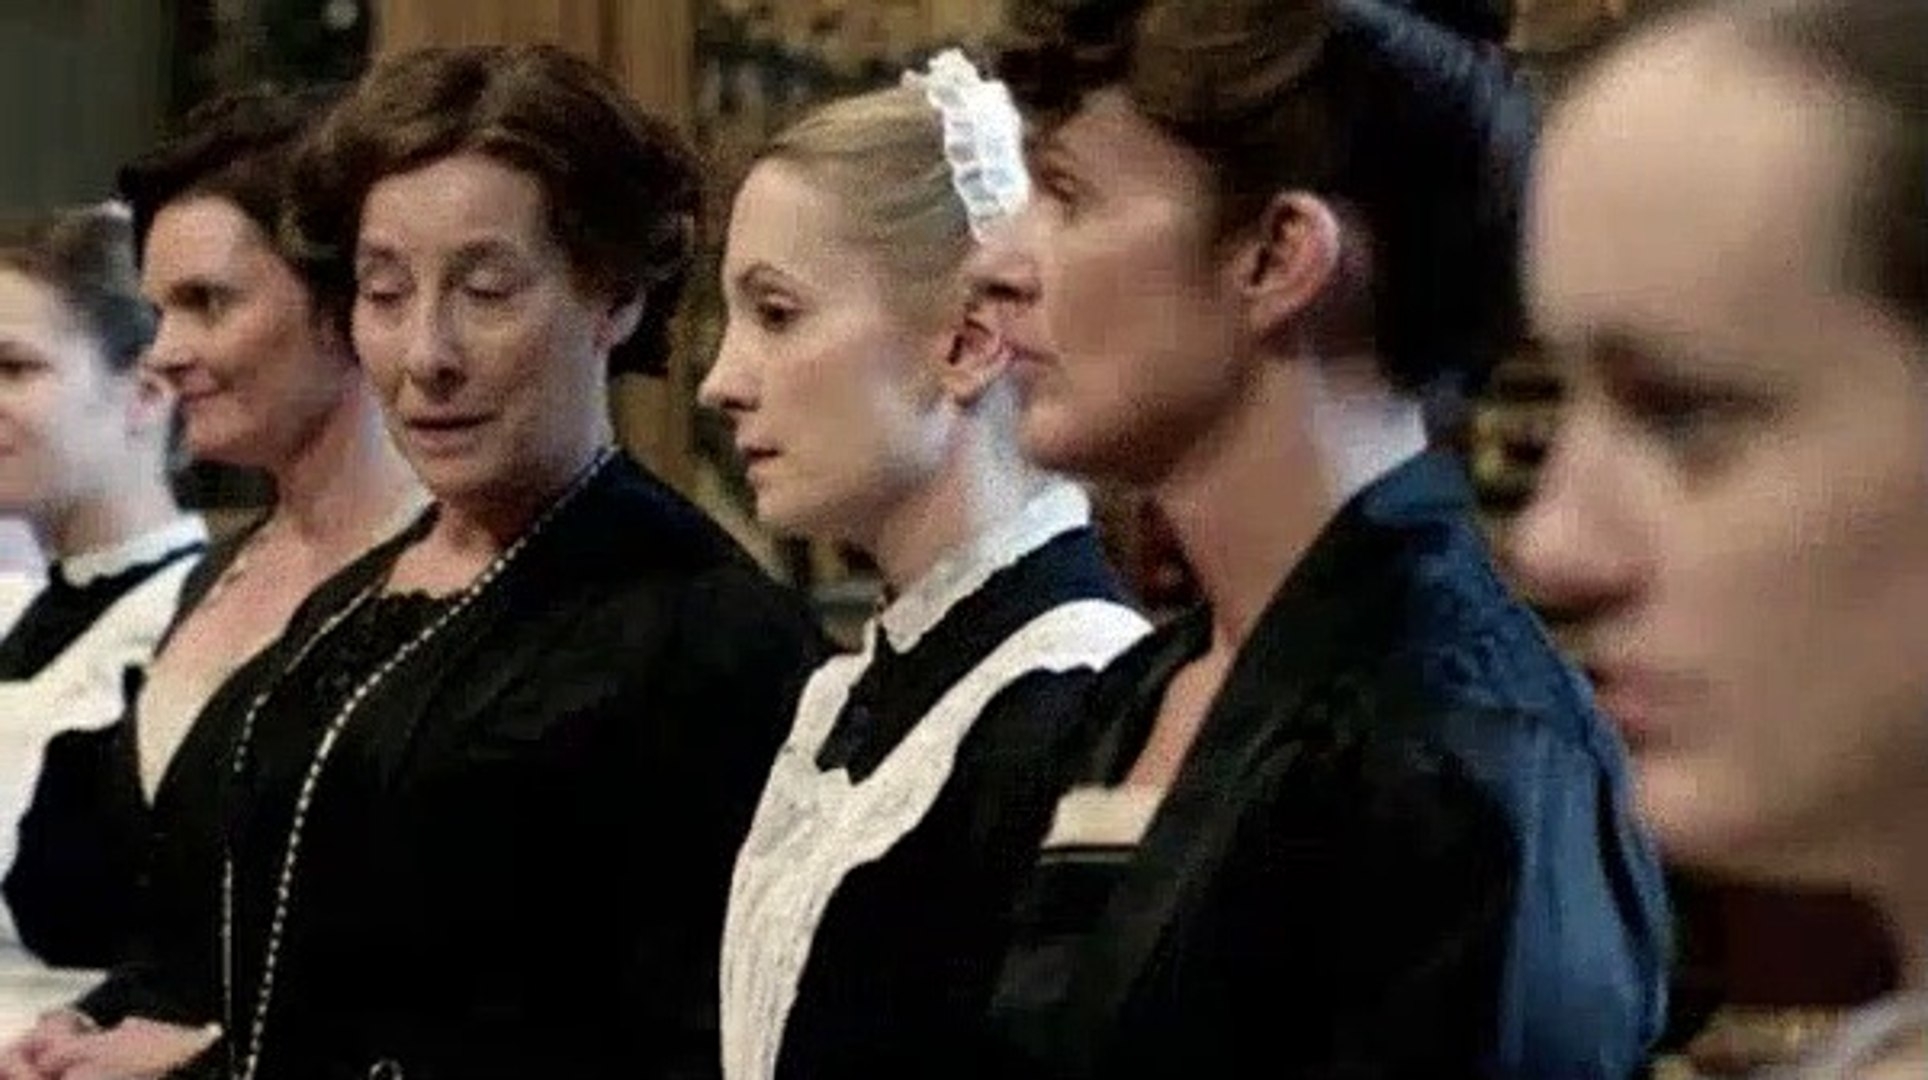 Downton Abbey S02E09 Christmas Special - Part 1